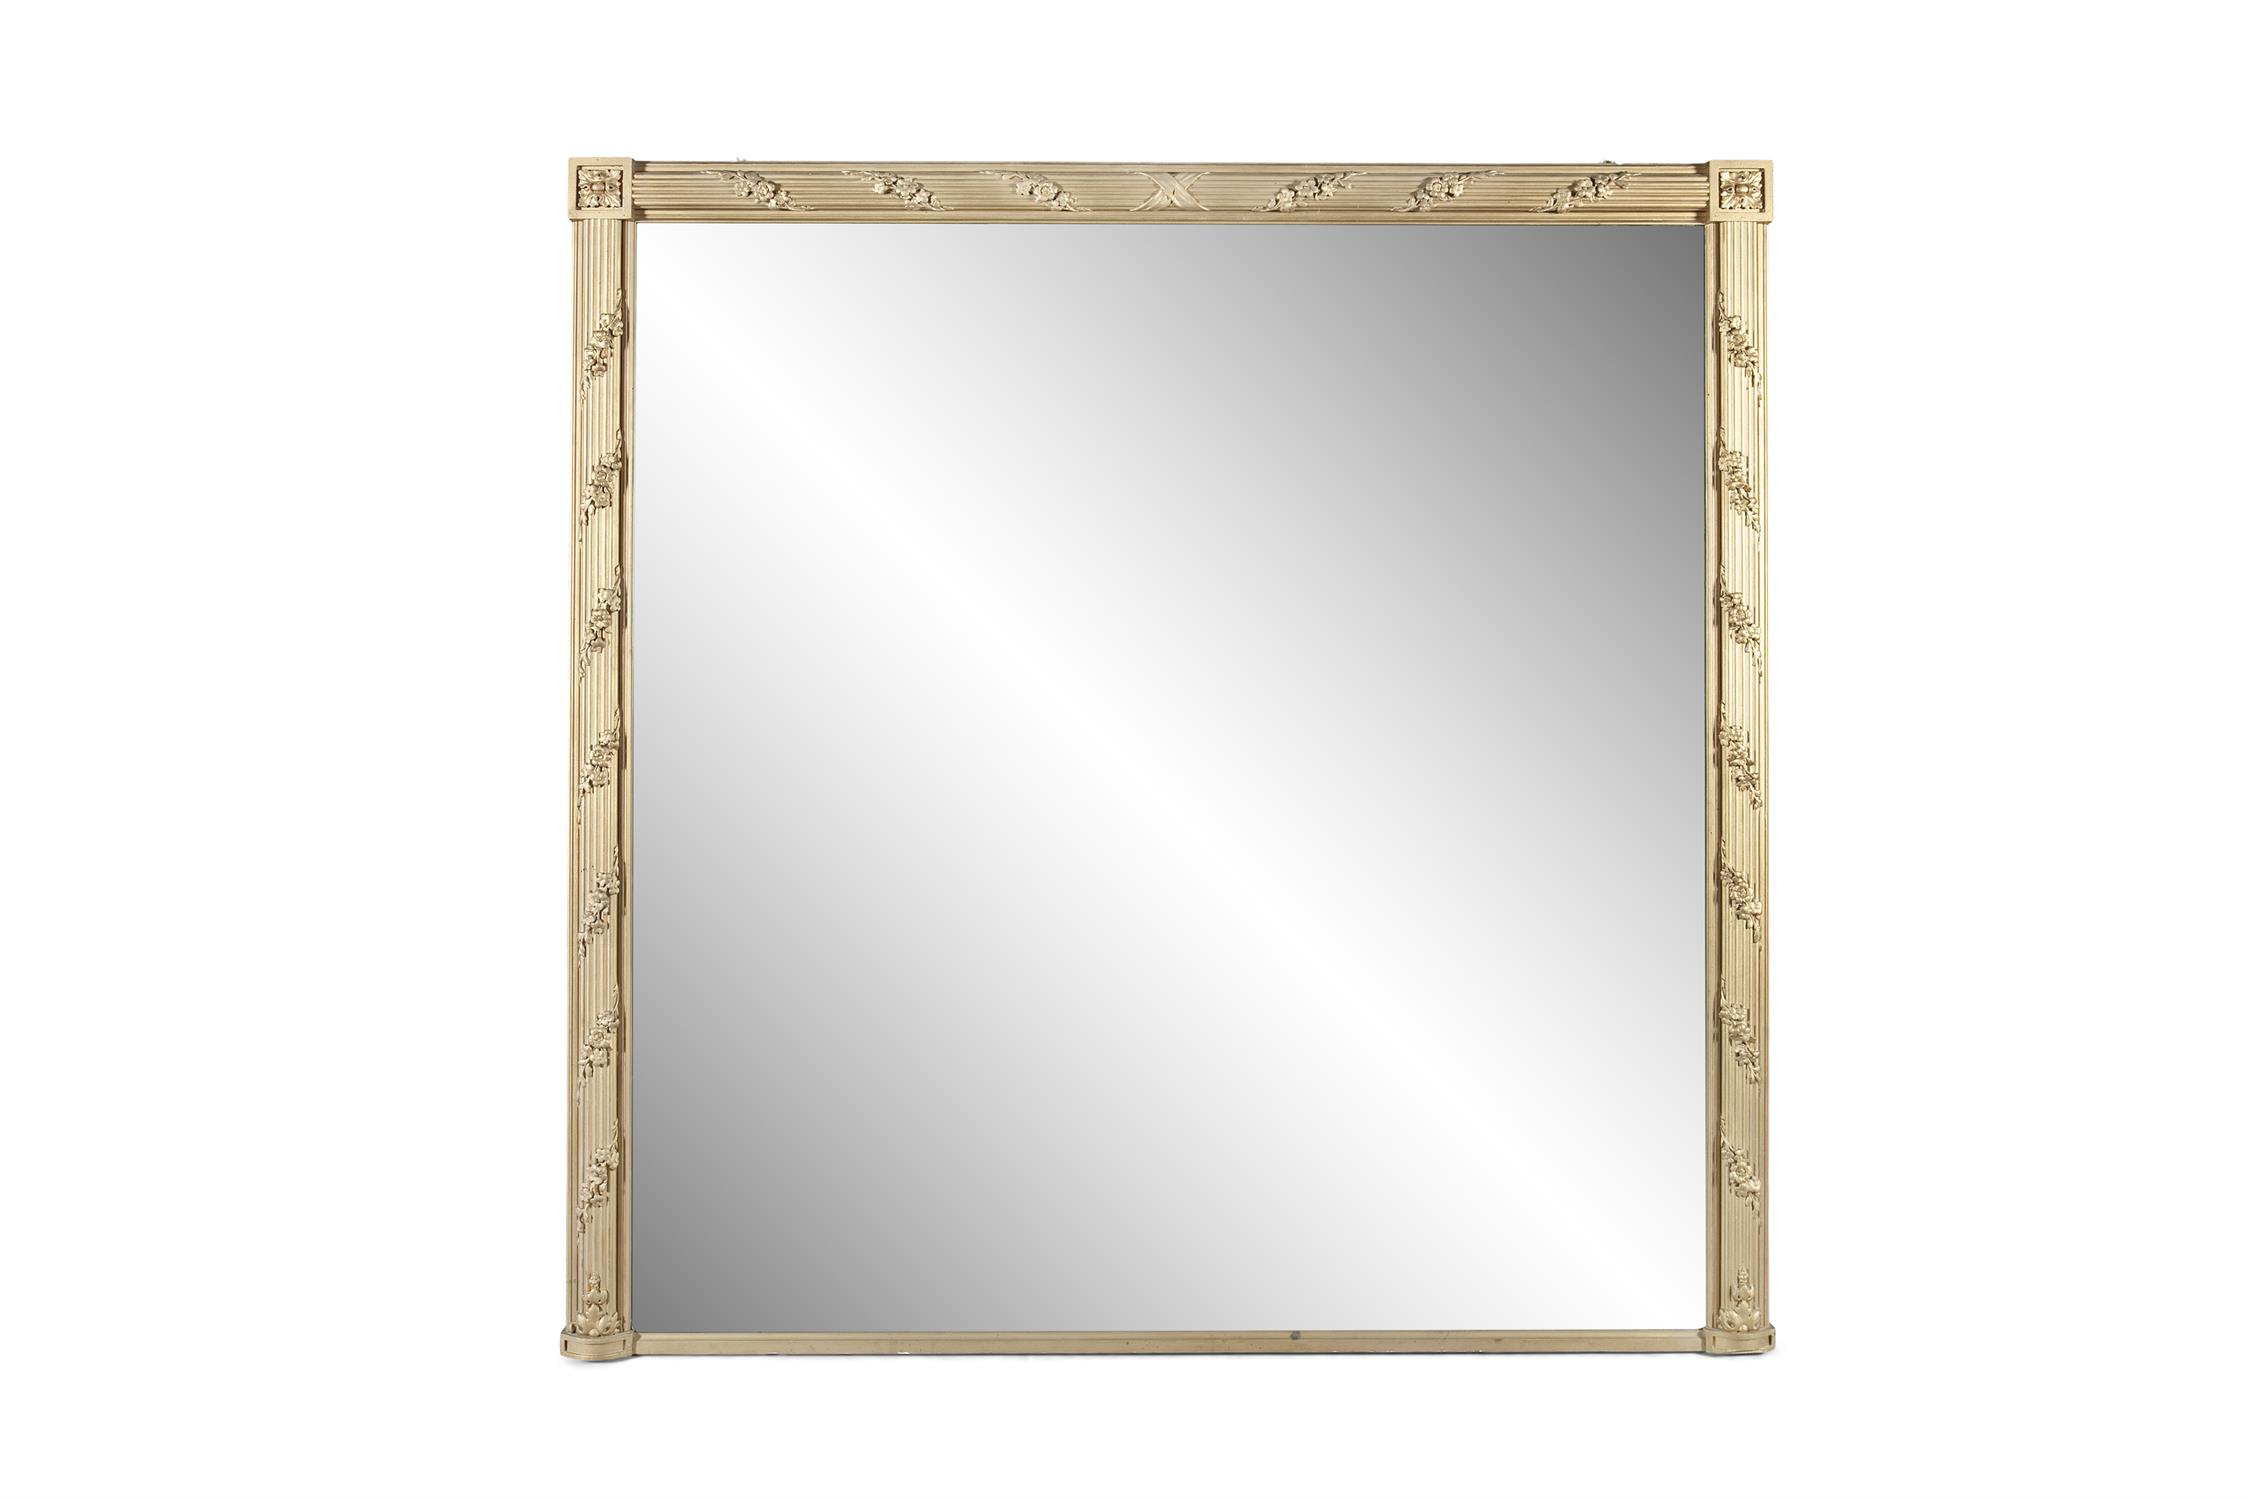 A LARGE GILTWOOD OVERMANTLE MIRROR, the square plate enclosed within a reeded frame wrapped with